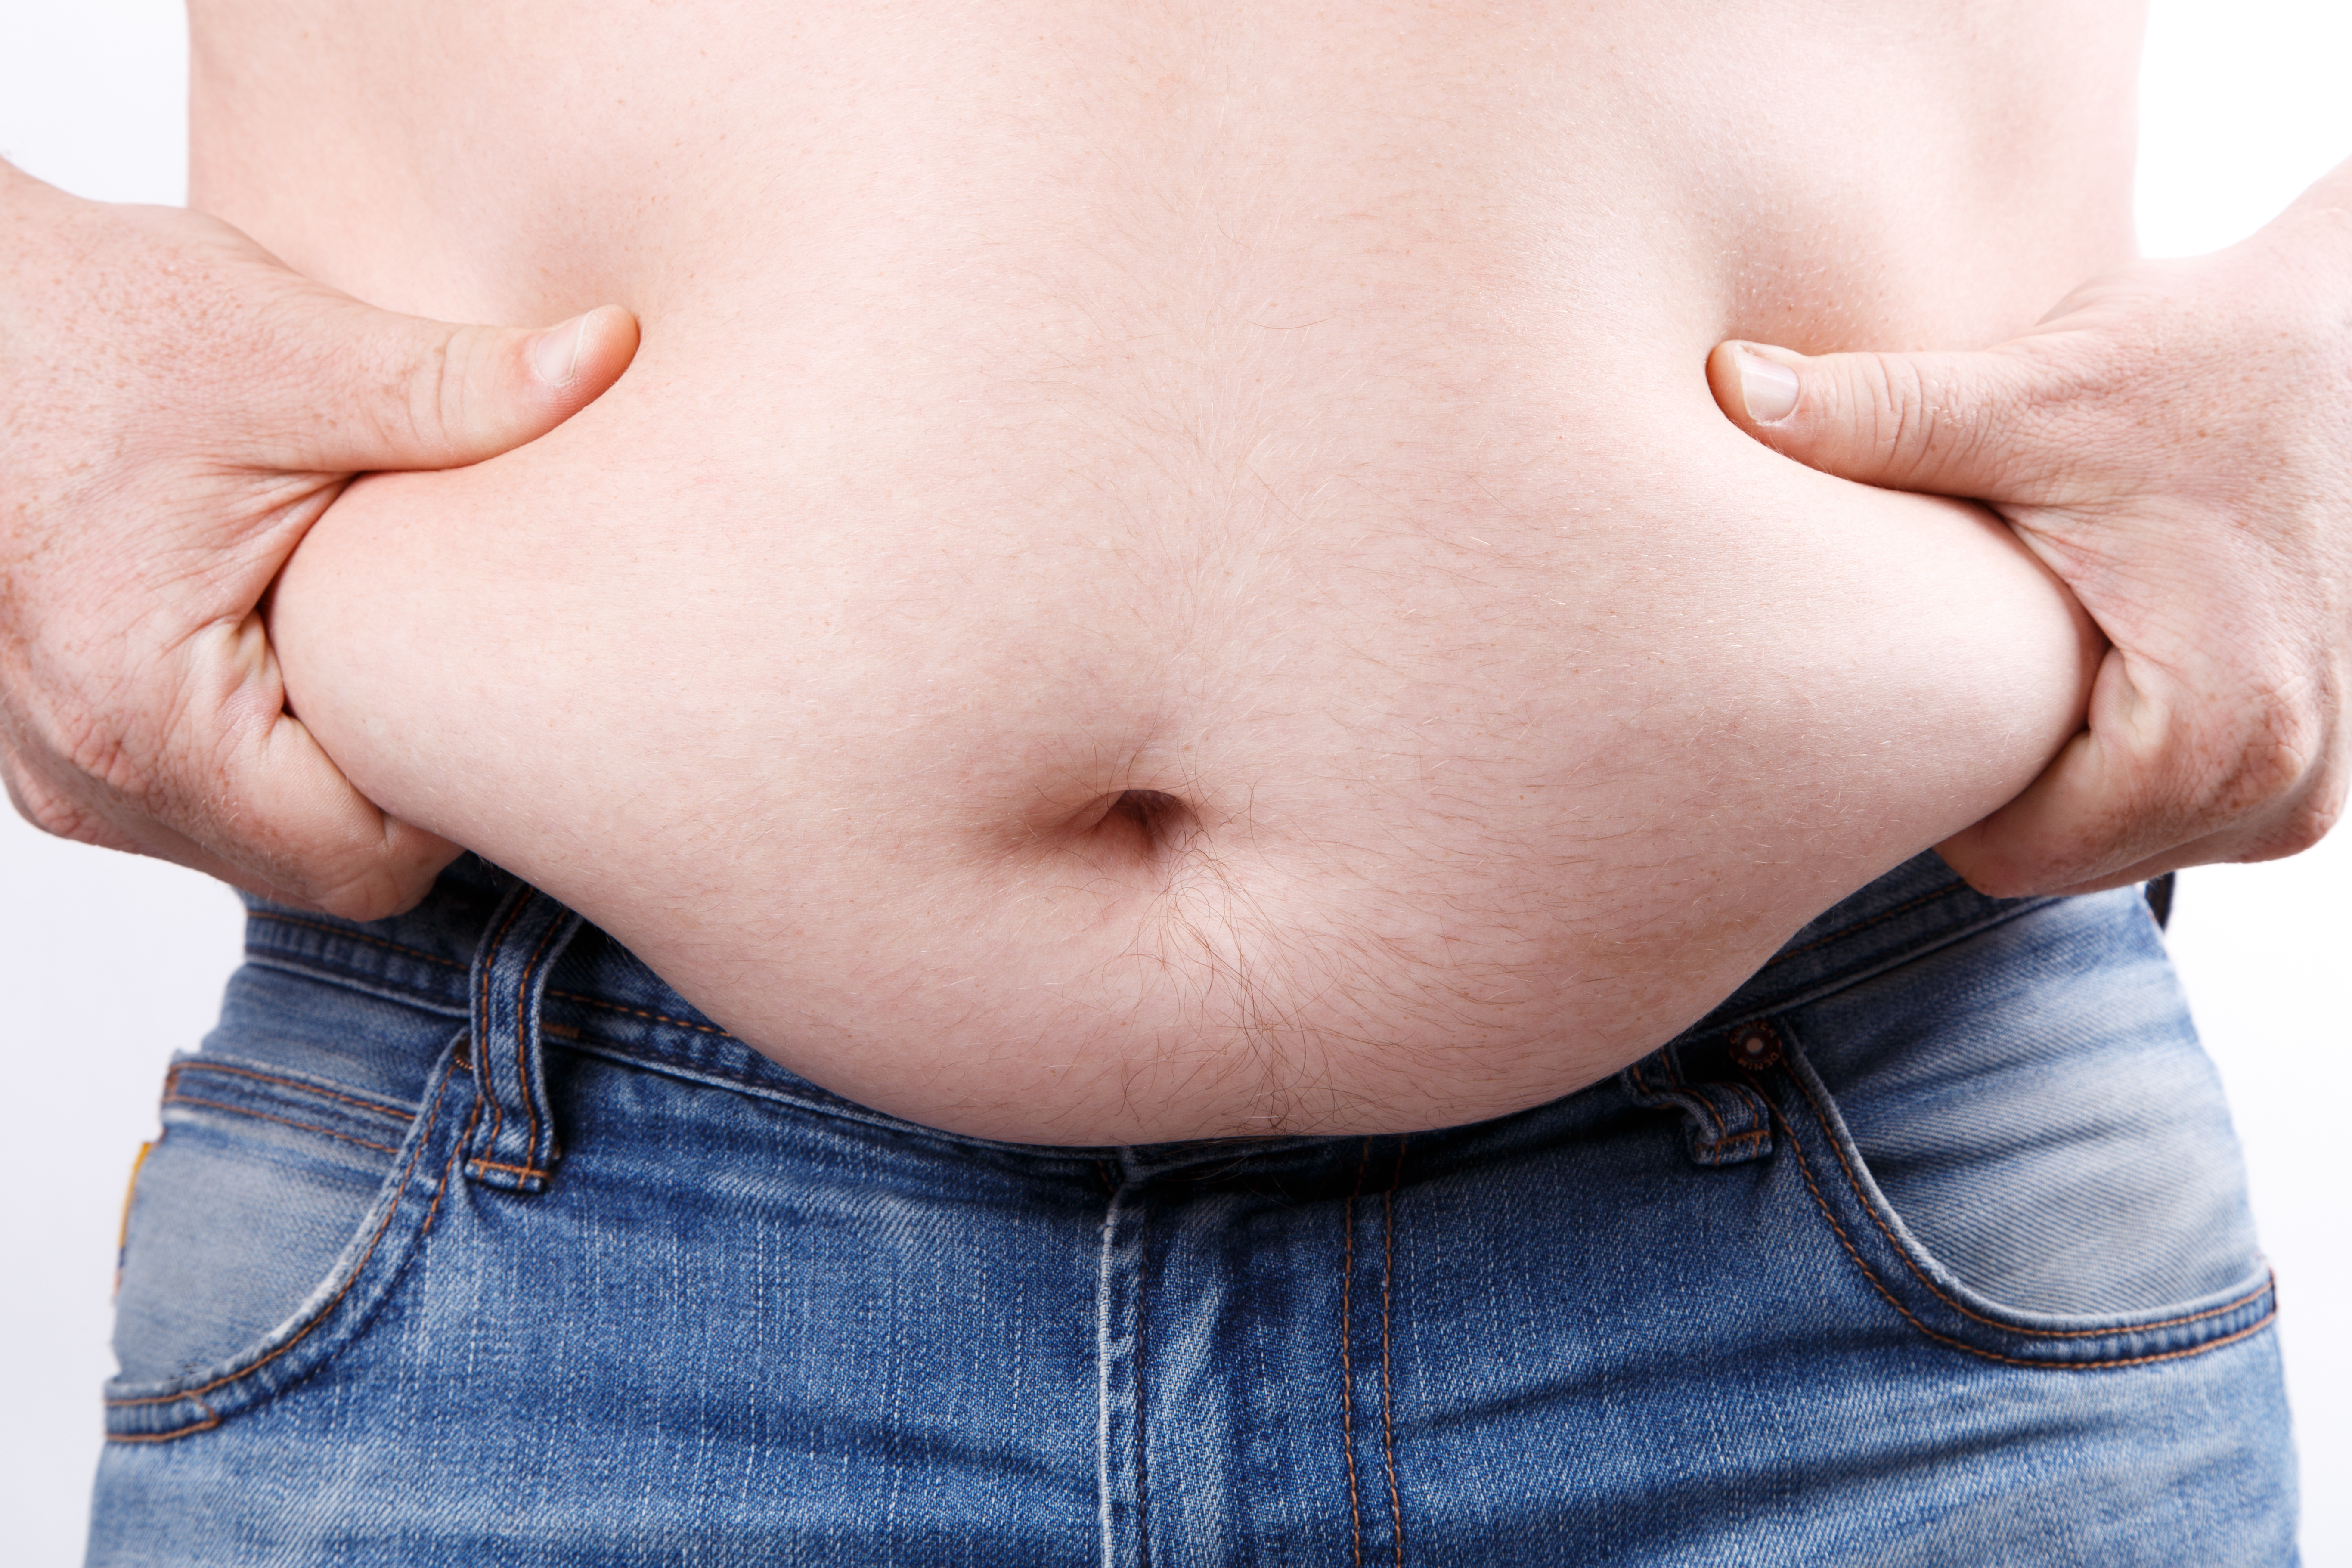 'A bleak picture': Cuts to multi-buy offers needed to end obesity epidemic